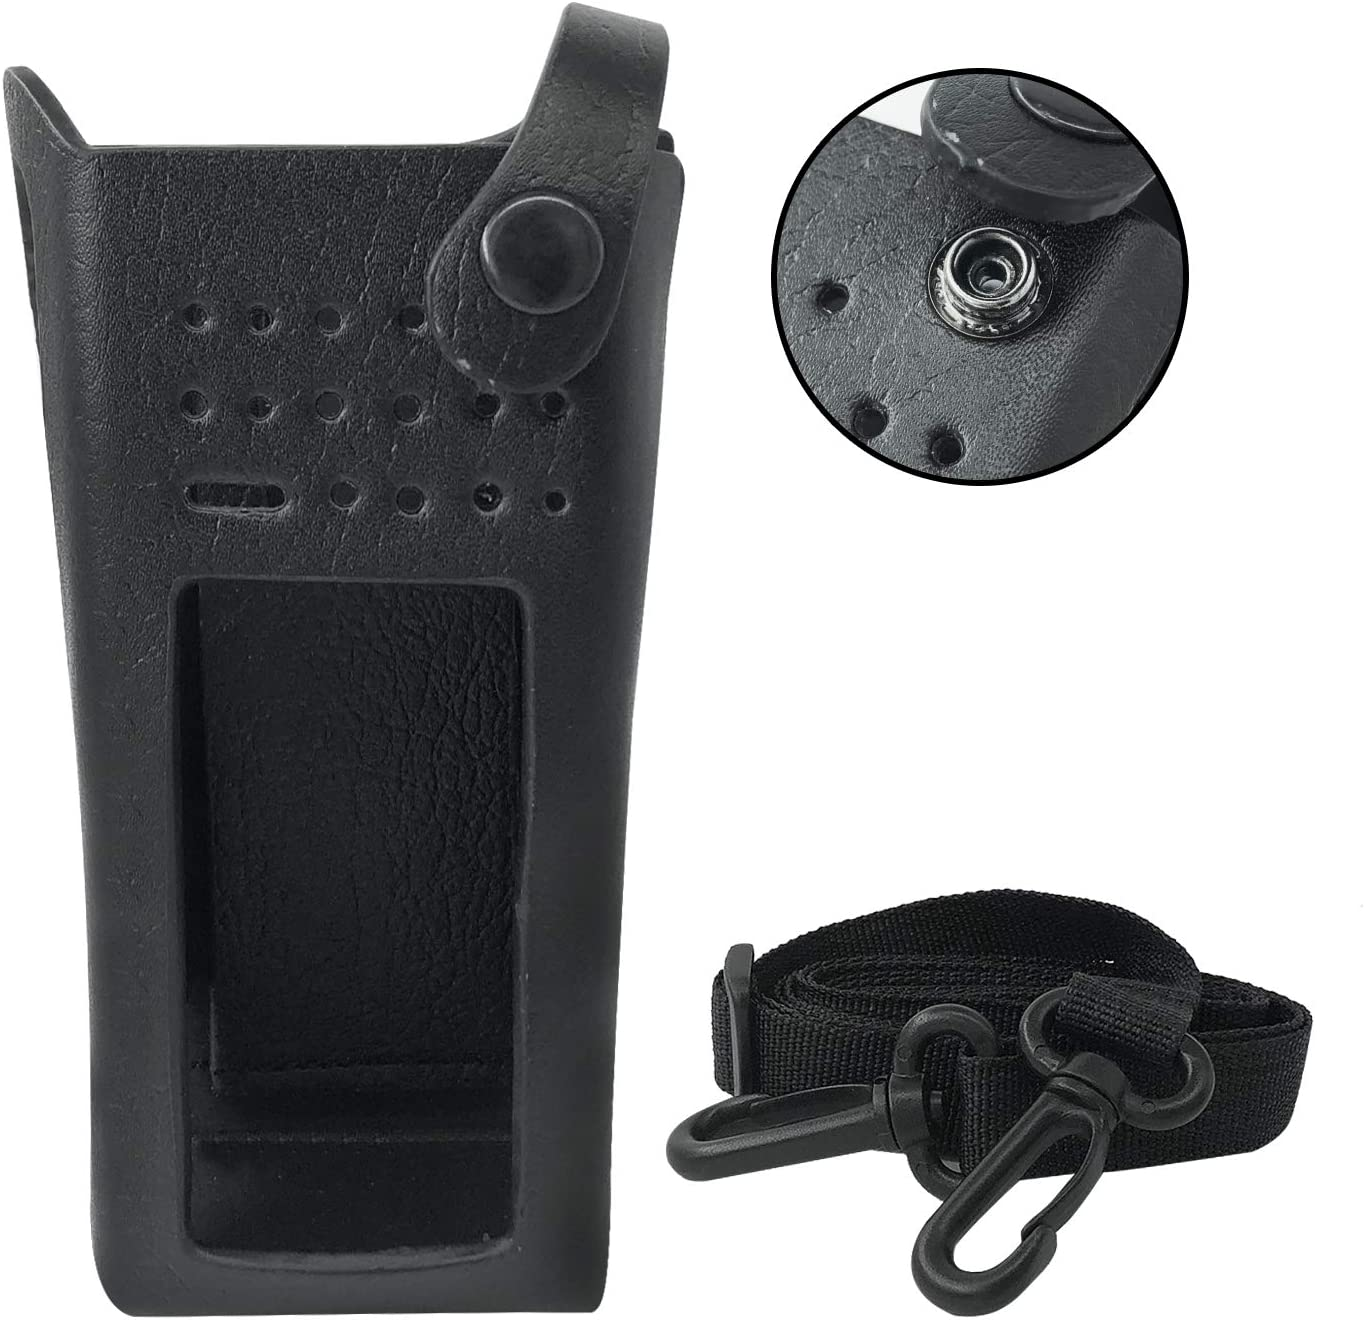 Amasu PMLN5838 Hard Leather Carry Case with Belt Loop for Motorola XPR7550 XPR7550e Walkie Talkie